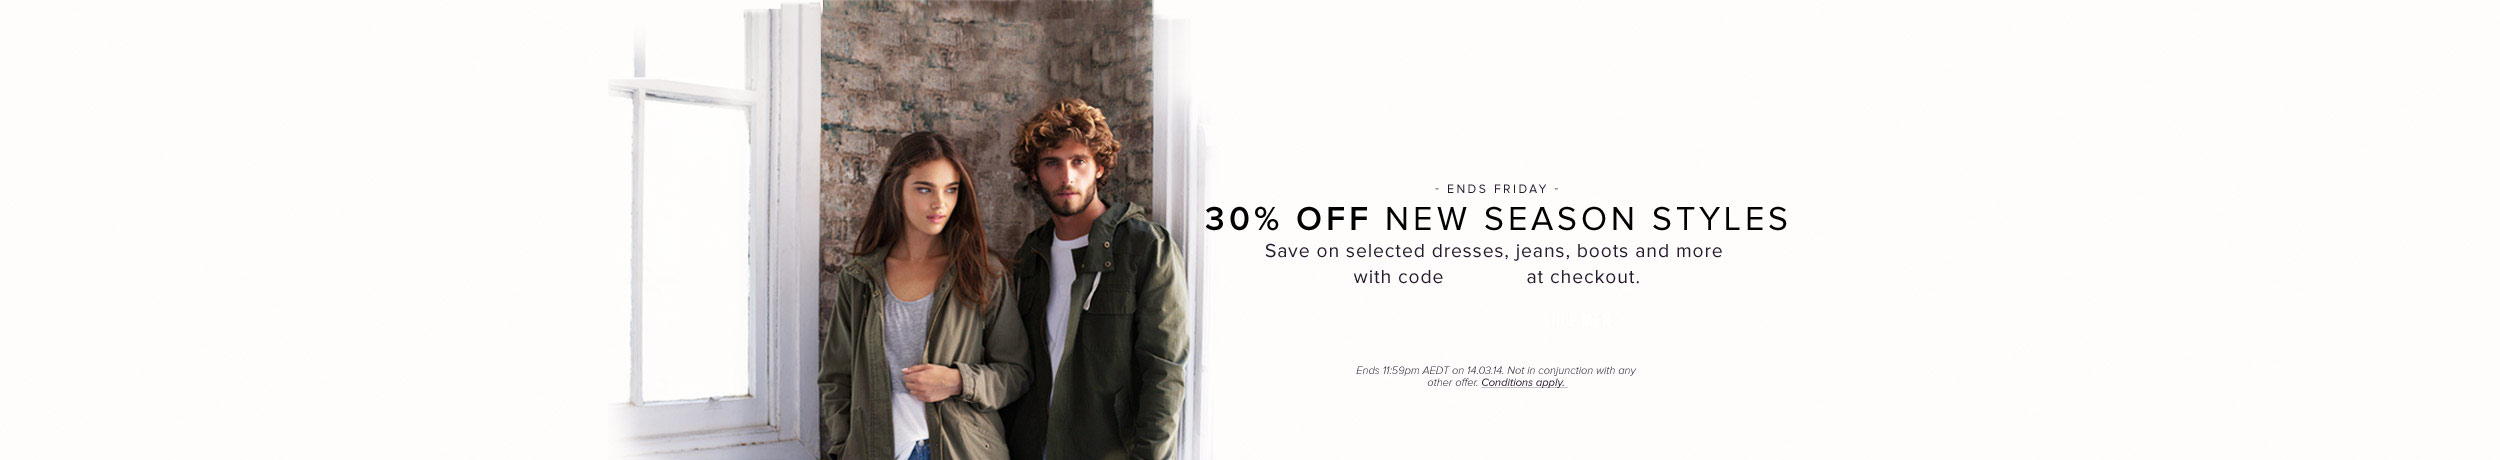 30% off New Season